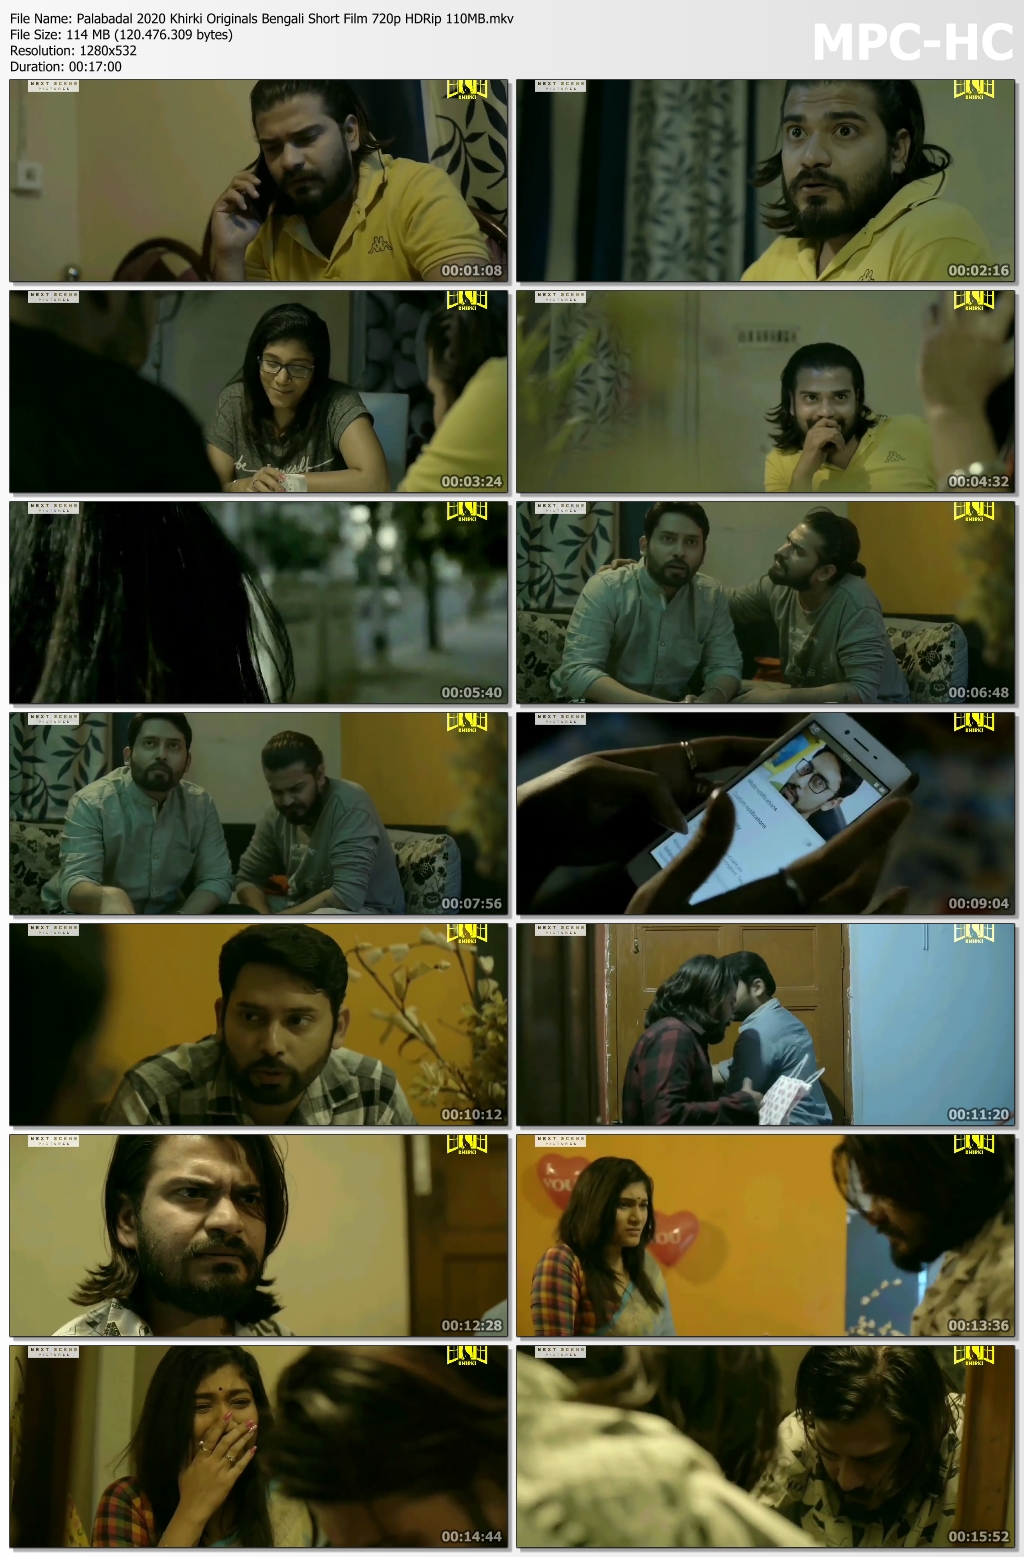 Palabadal-2020-Khirki-Originals-Bengali-Short-Film-720p-HDRip-110-MB-mkv-thumbs